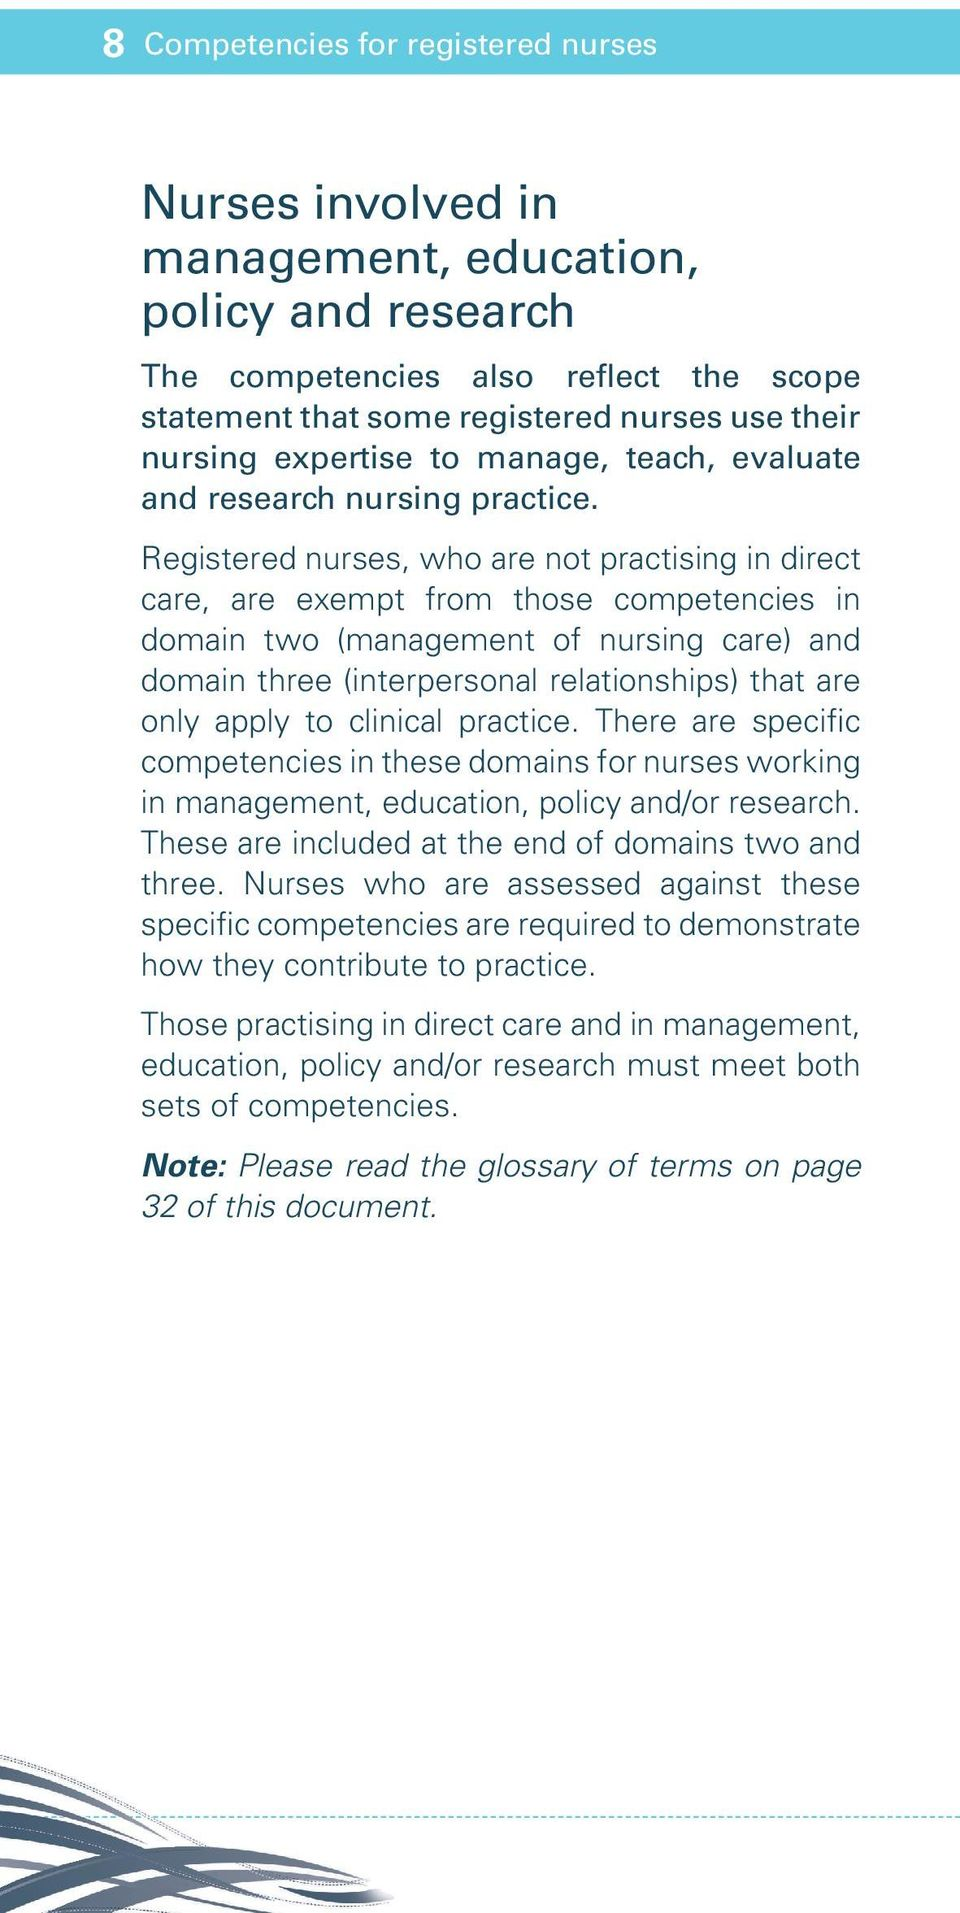 Registered nurses, who are not practising in direct care, are exempt from those competencies in domain two (management of nursing care) and domain three (interpersonal relationships) that are only